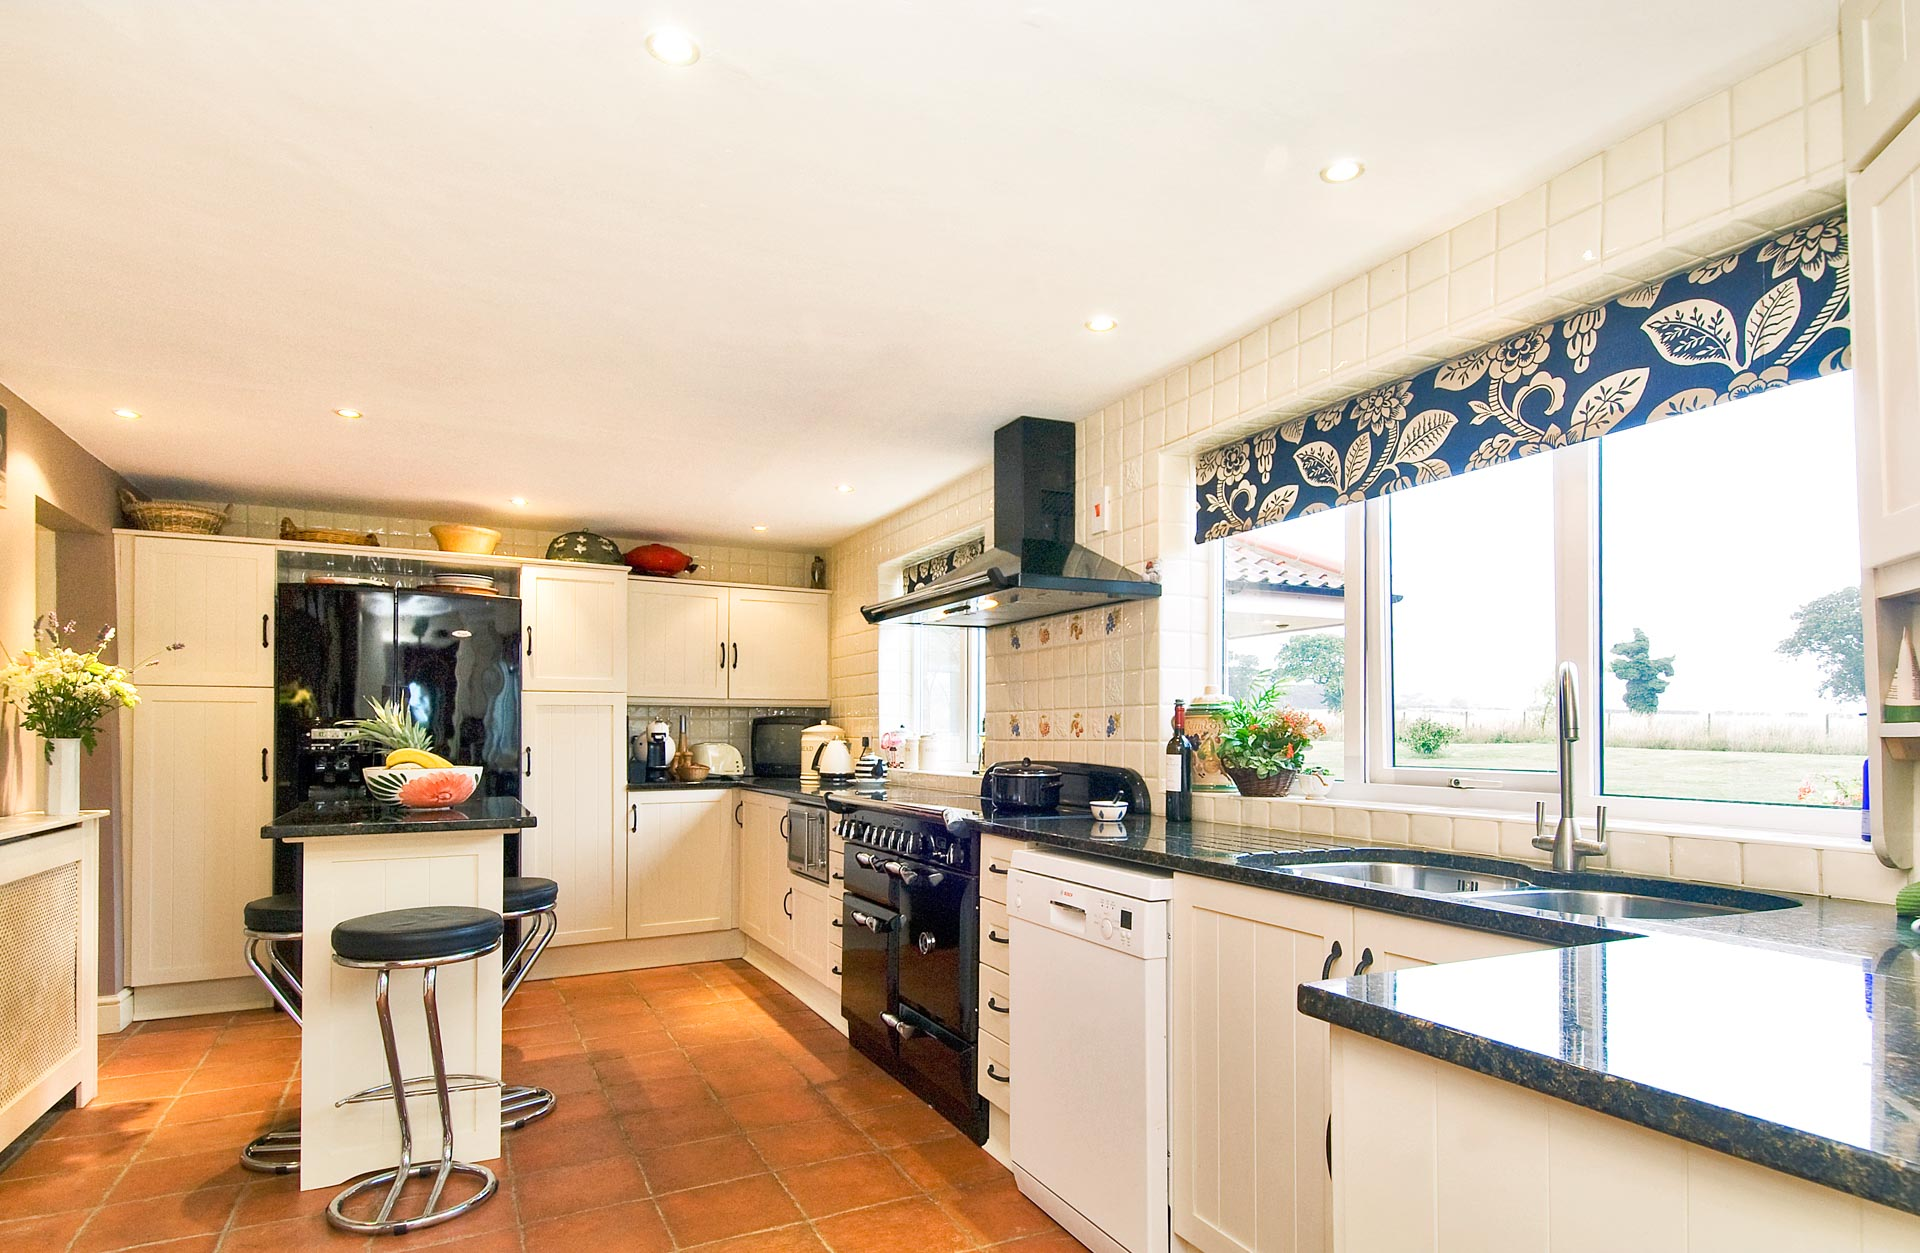 Holiday accommodation kitchen with island breakfast bar.